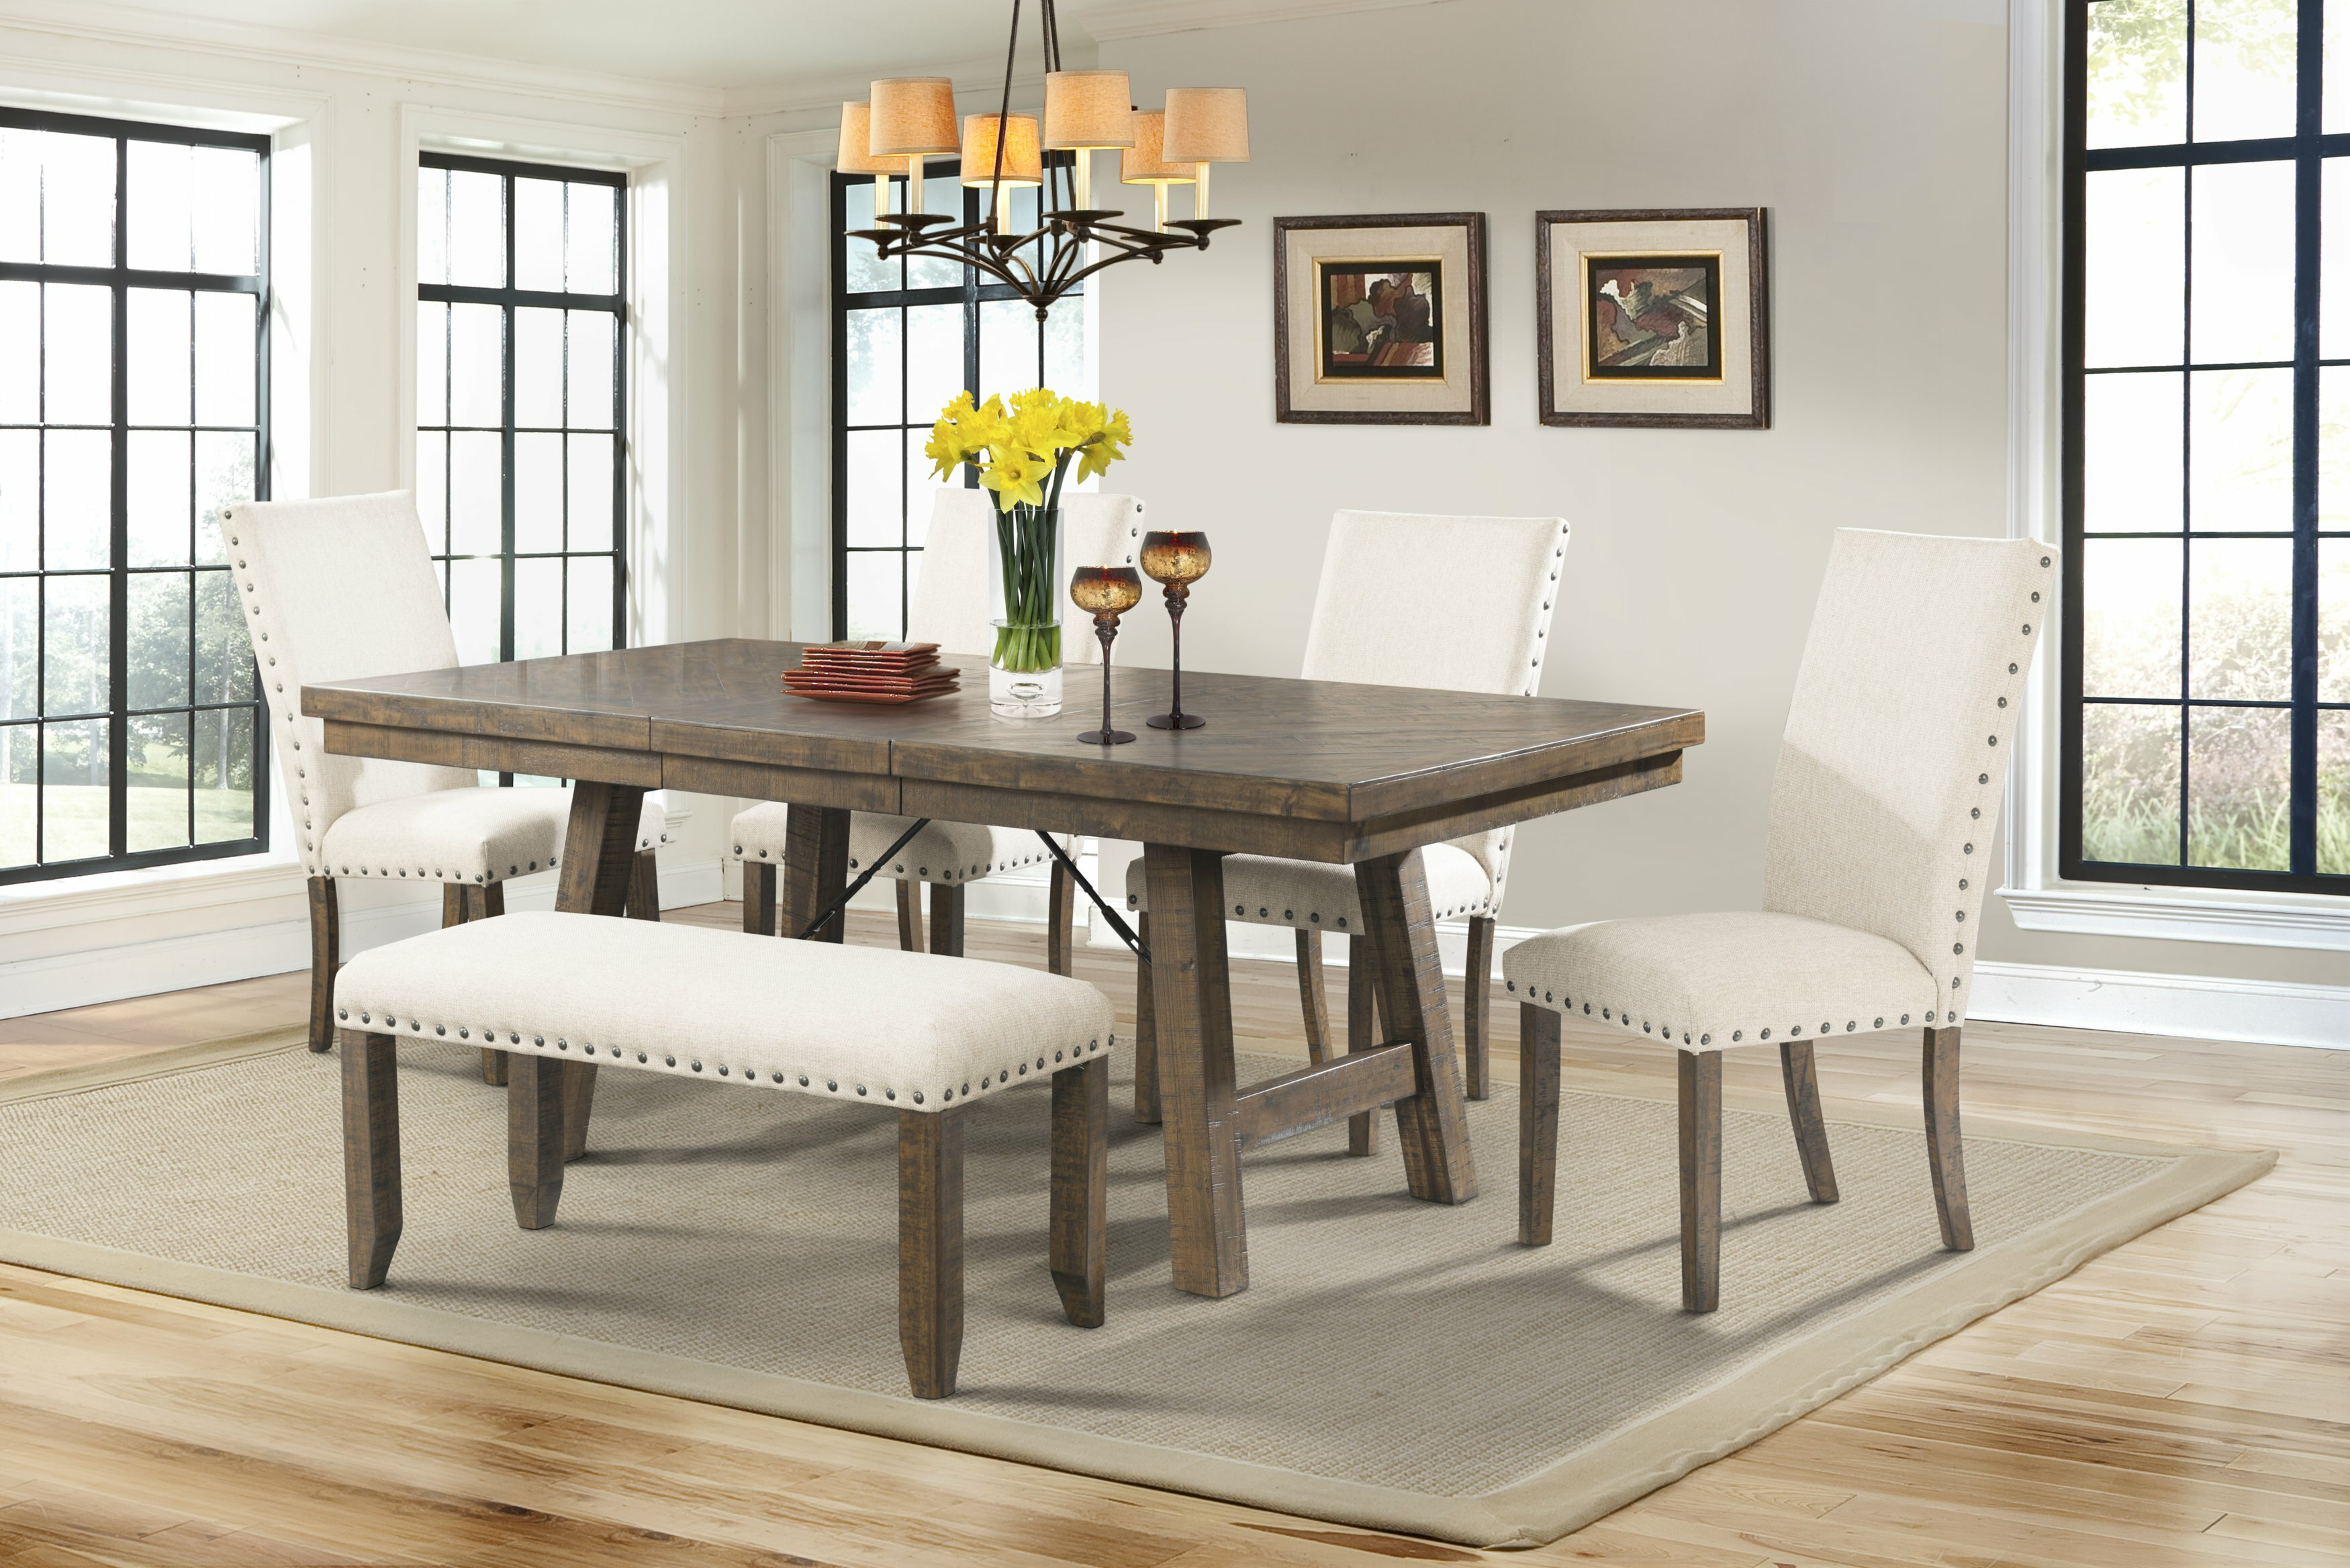 High Quality Laurel Foundry Modern Farmhouse Dearing 6 Piece Dining Set U0026 Reviews |  Wayfair